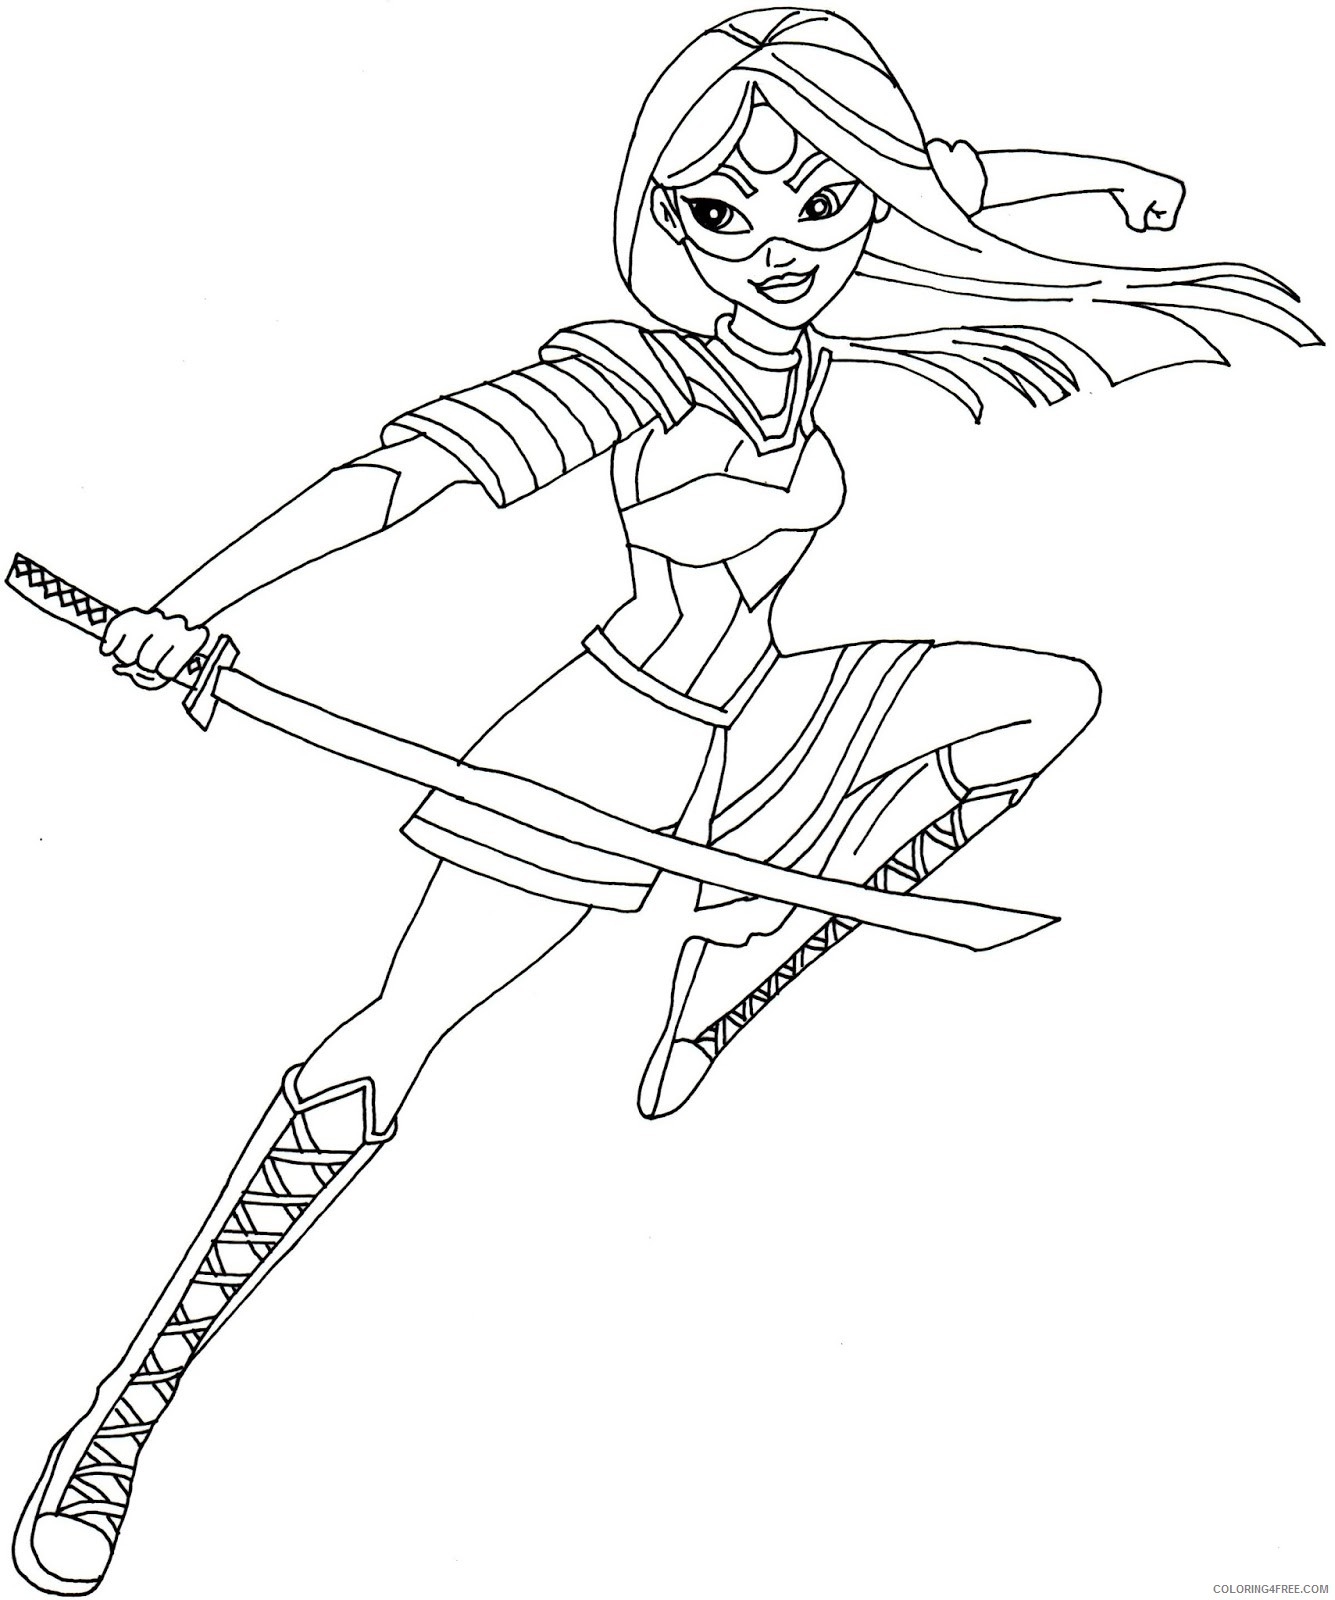 Suicide Squad Coloring Pages Cartoons Katana Suicide Squad Printable 2020 6072 Coloring4free